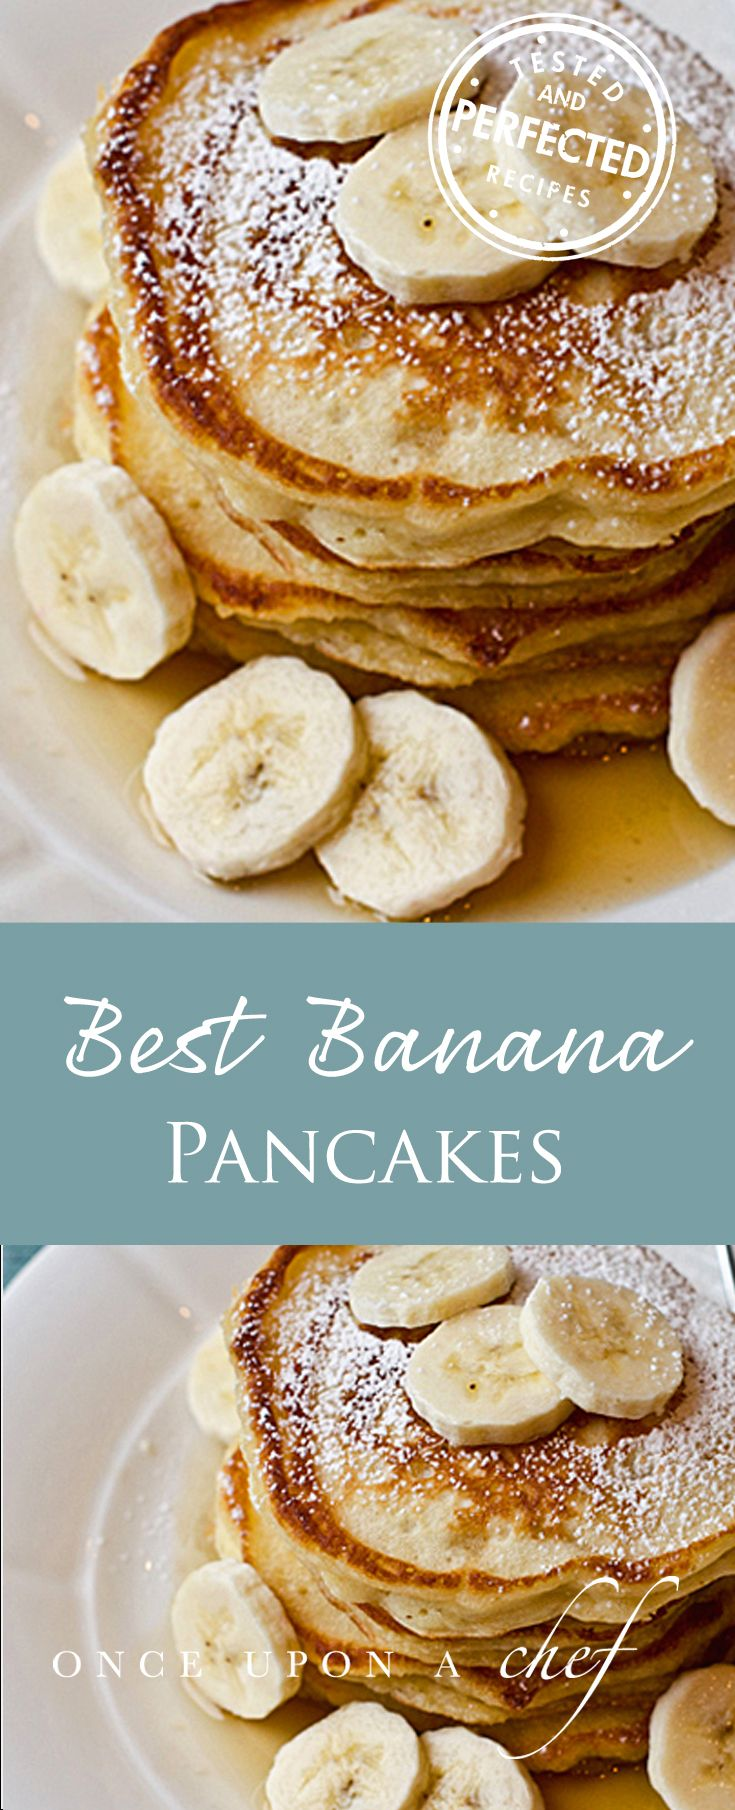 Banana Pancakes Once Upon A Chef Recipe Banana Recipes Breakfast Recipes